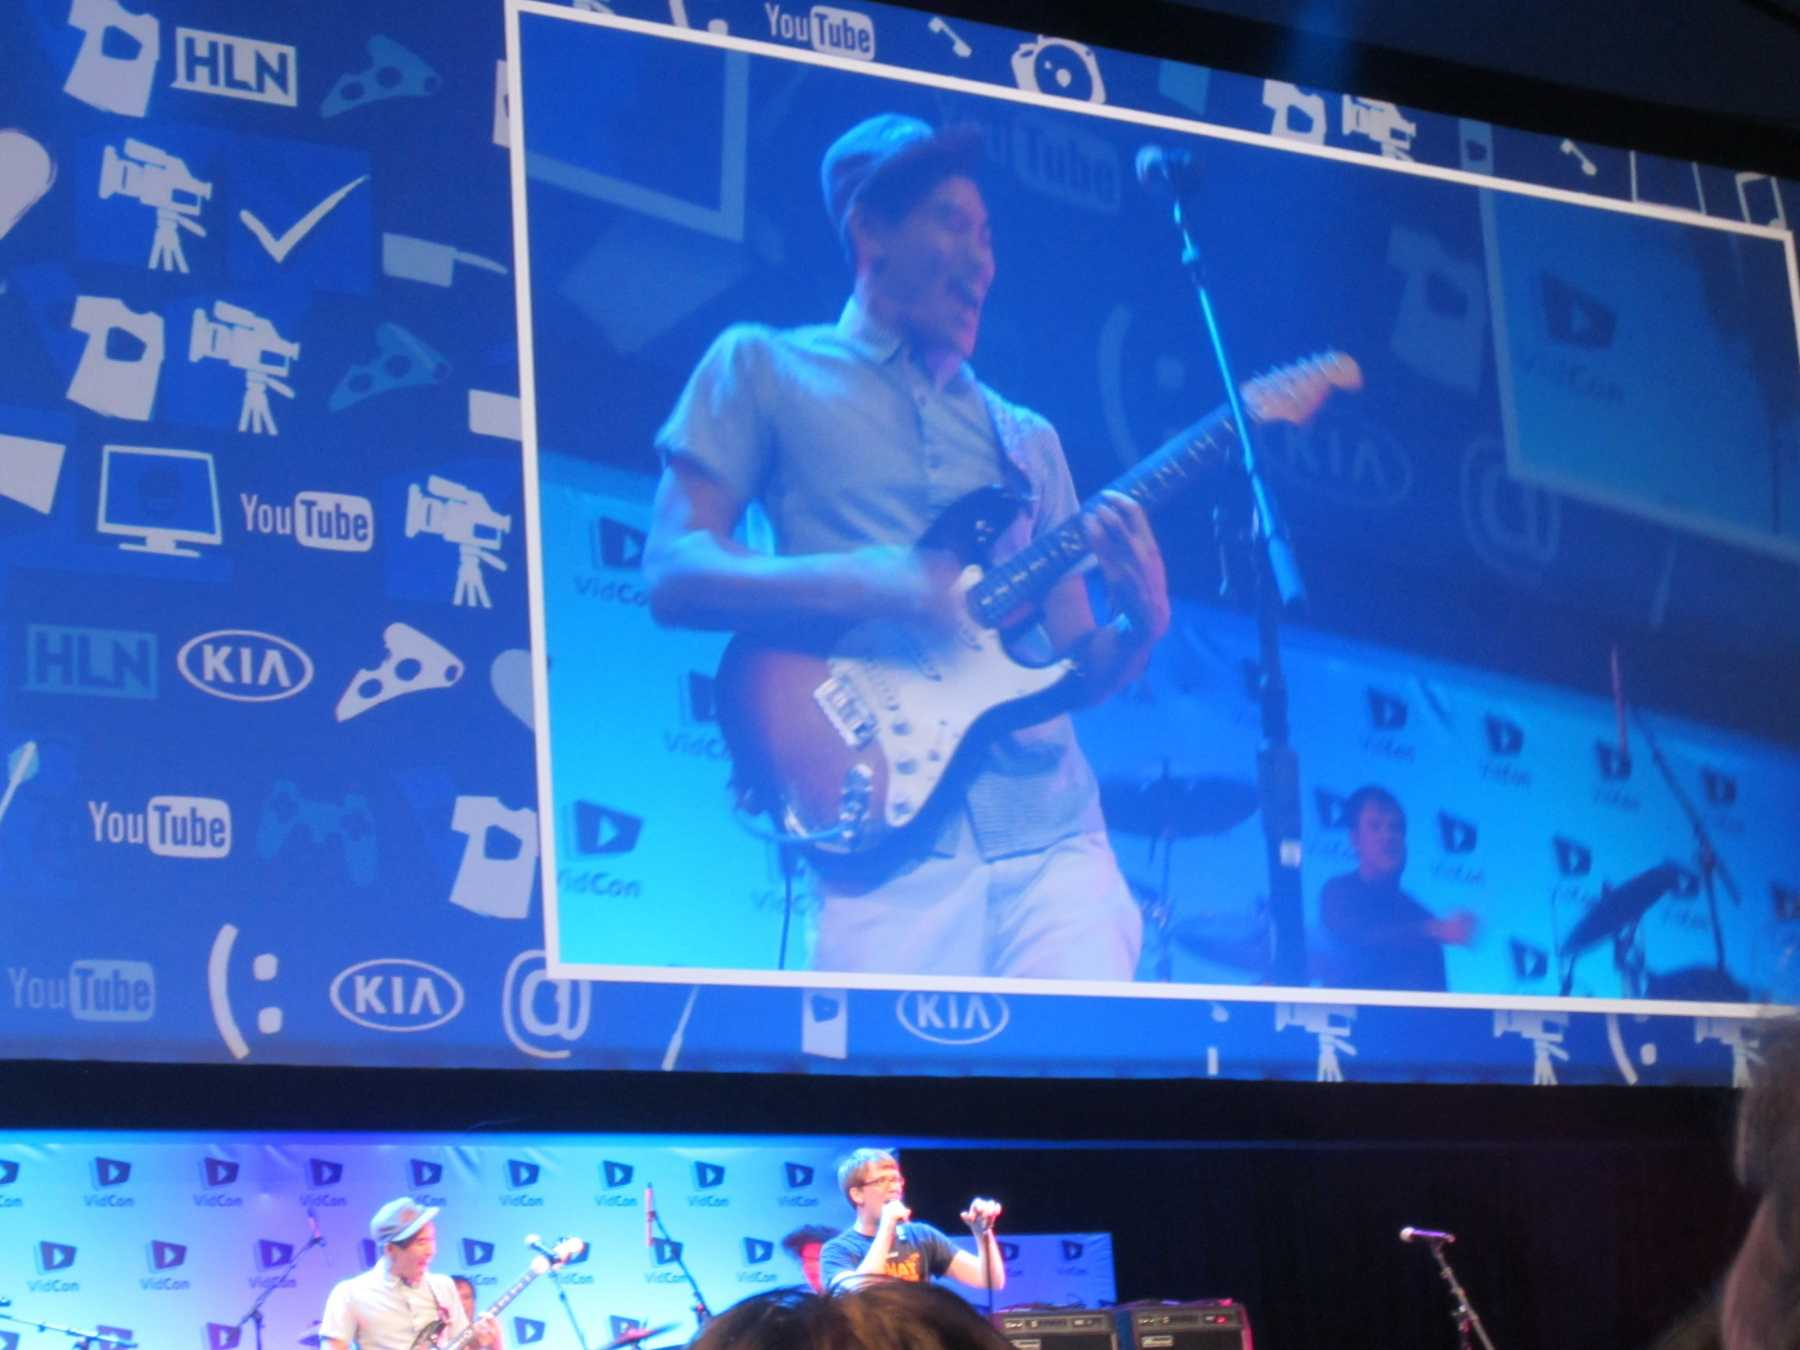 Musical YouTubers Take Centre Stage At VidCon 2014